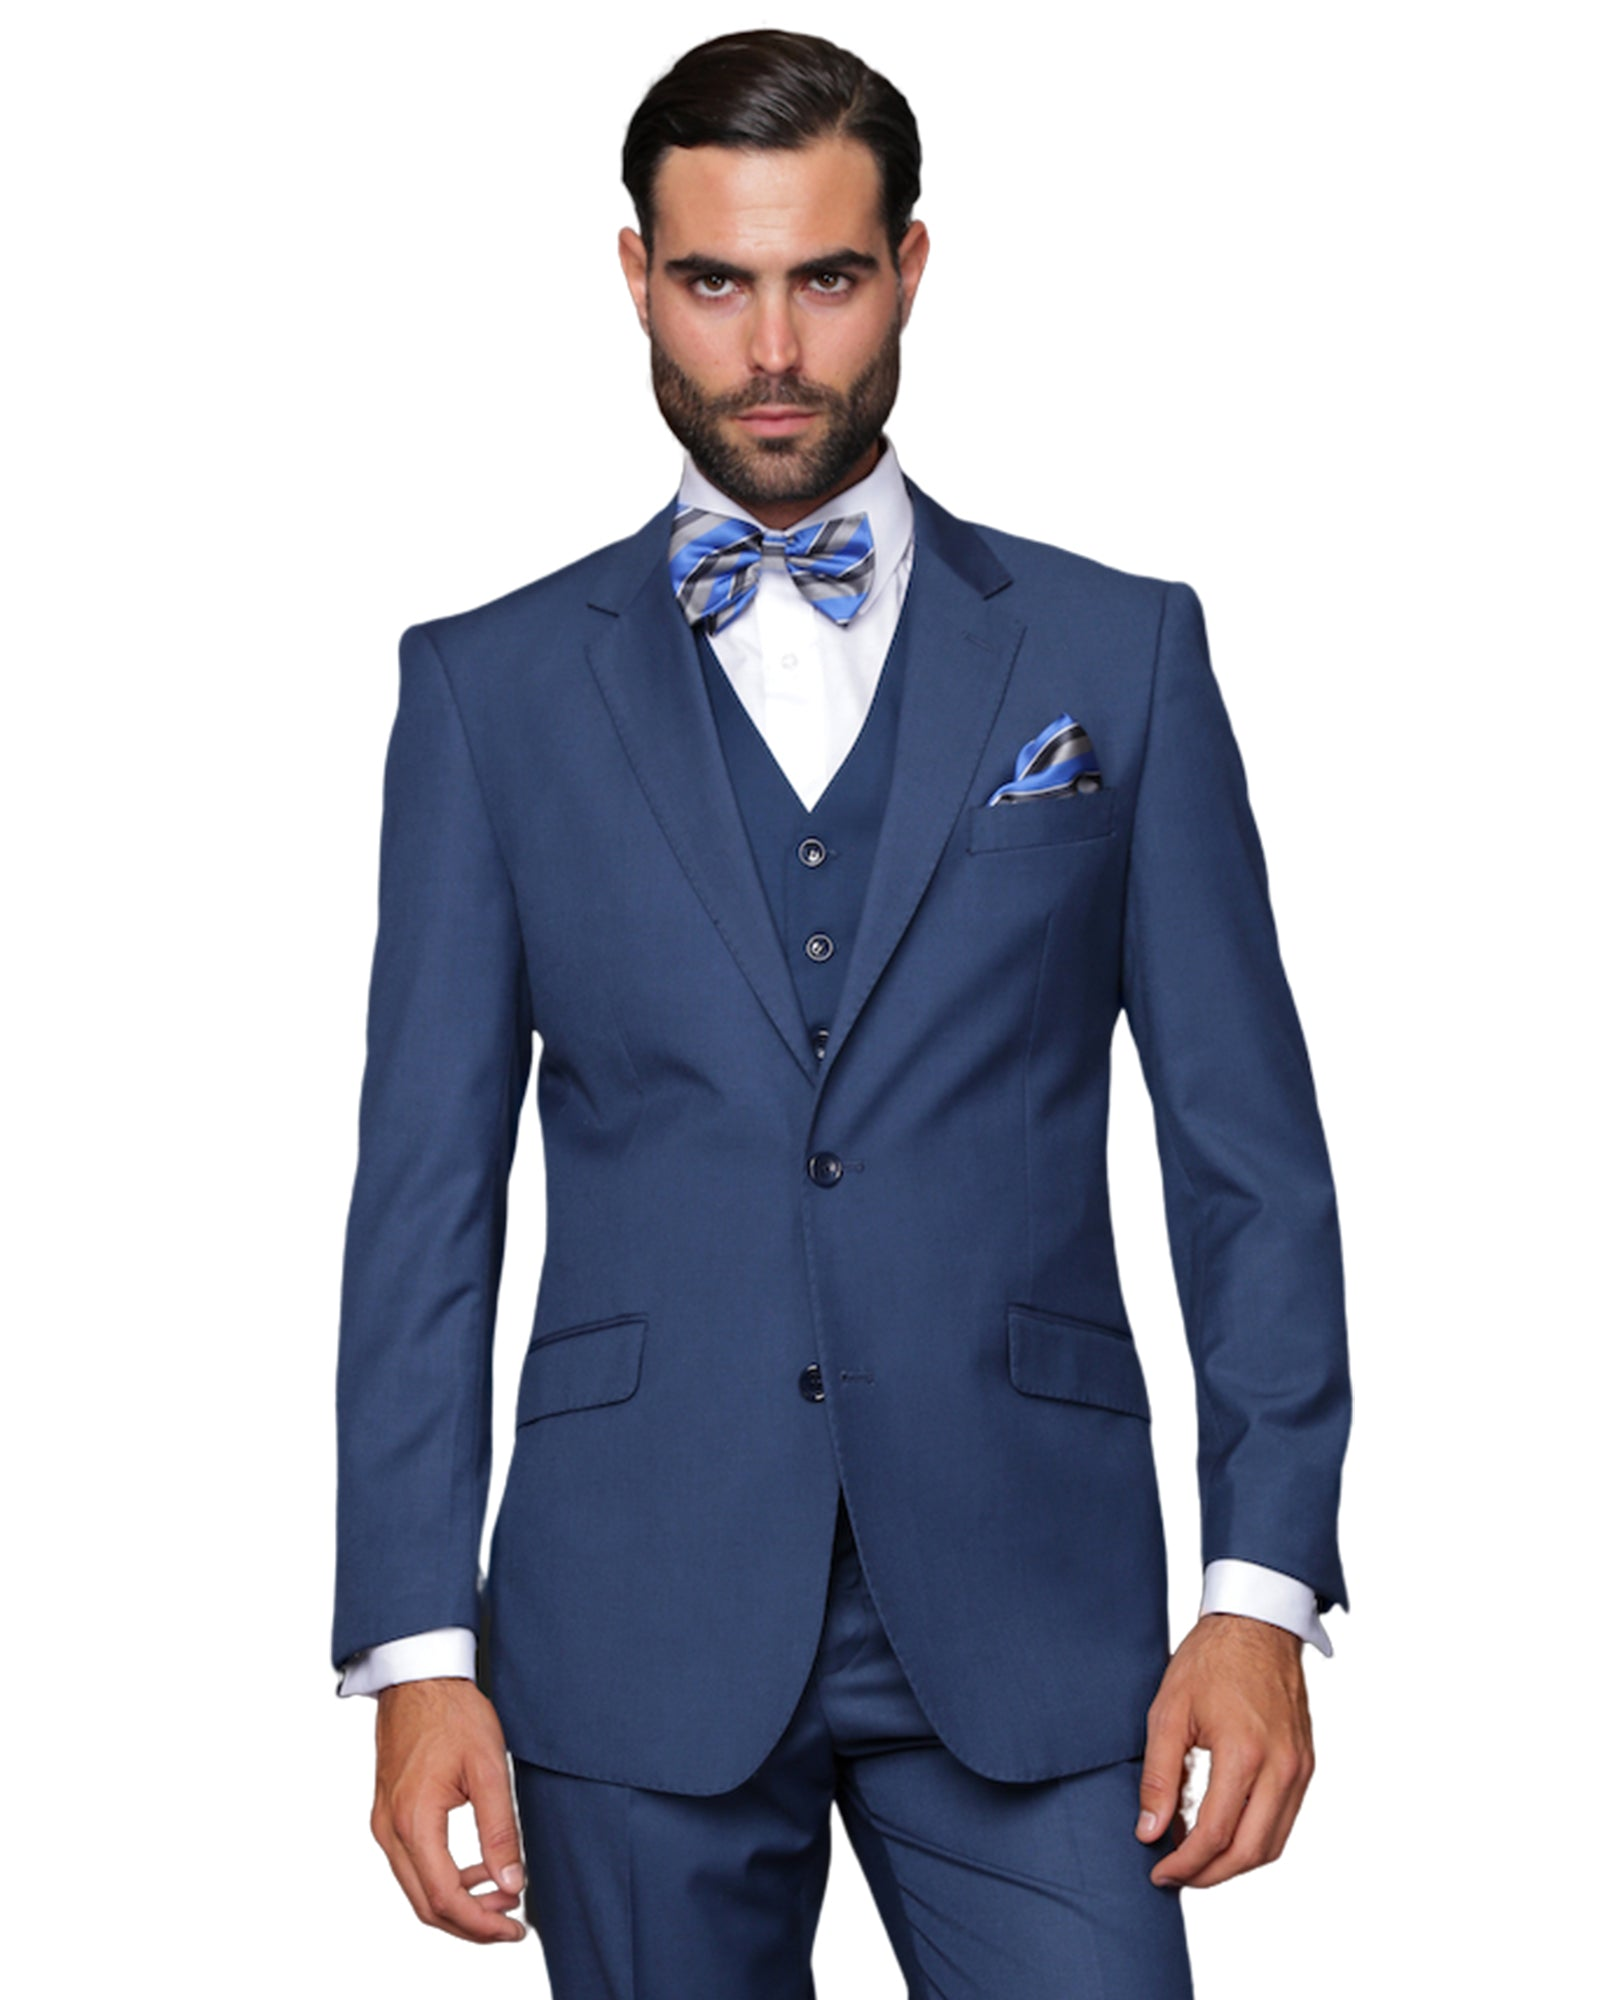 French Blue Suit Rental - Rainwater's Men's Clothing and Tuxedo Rental